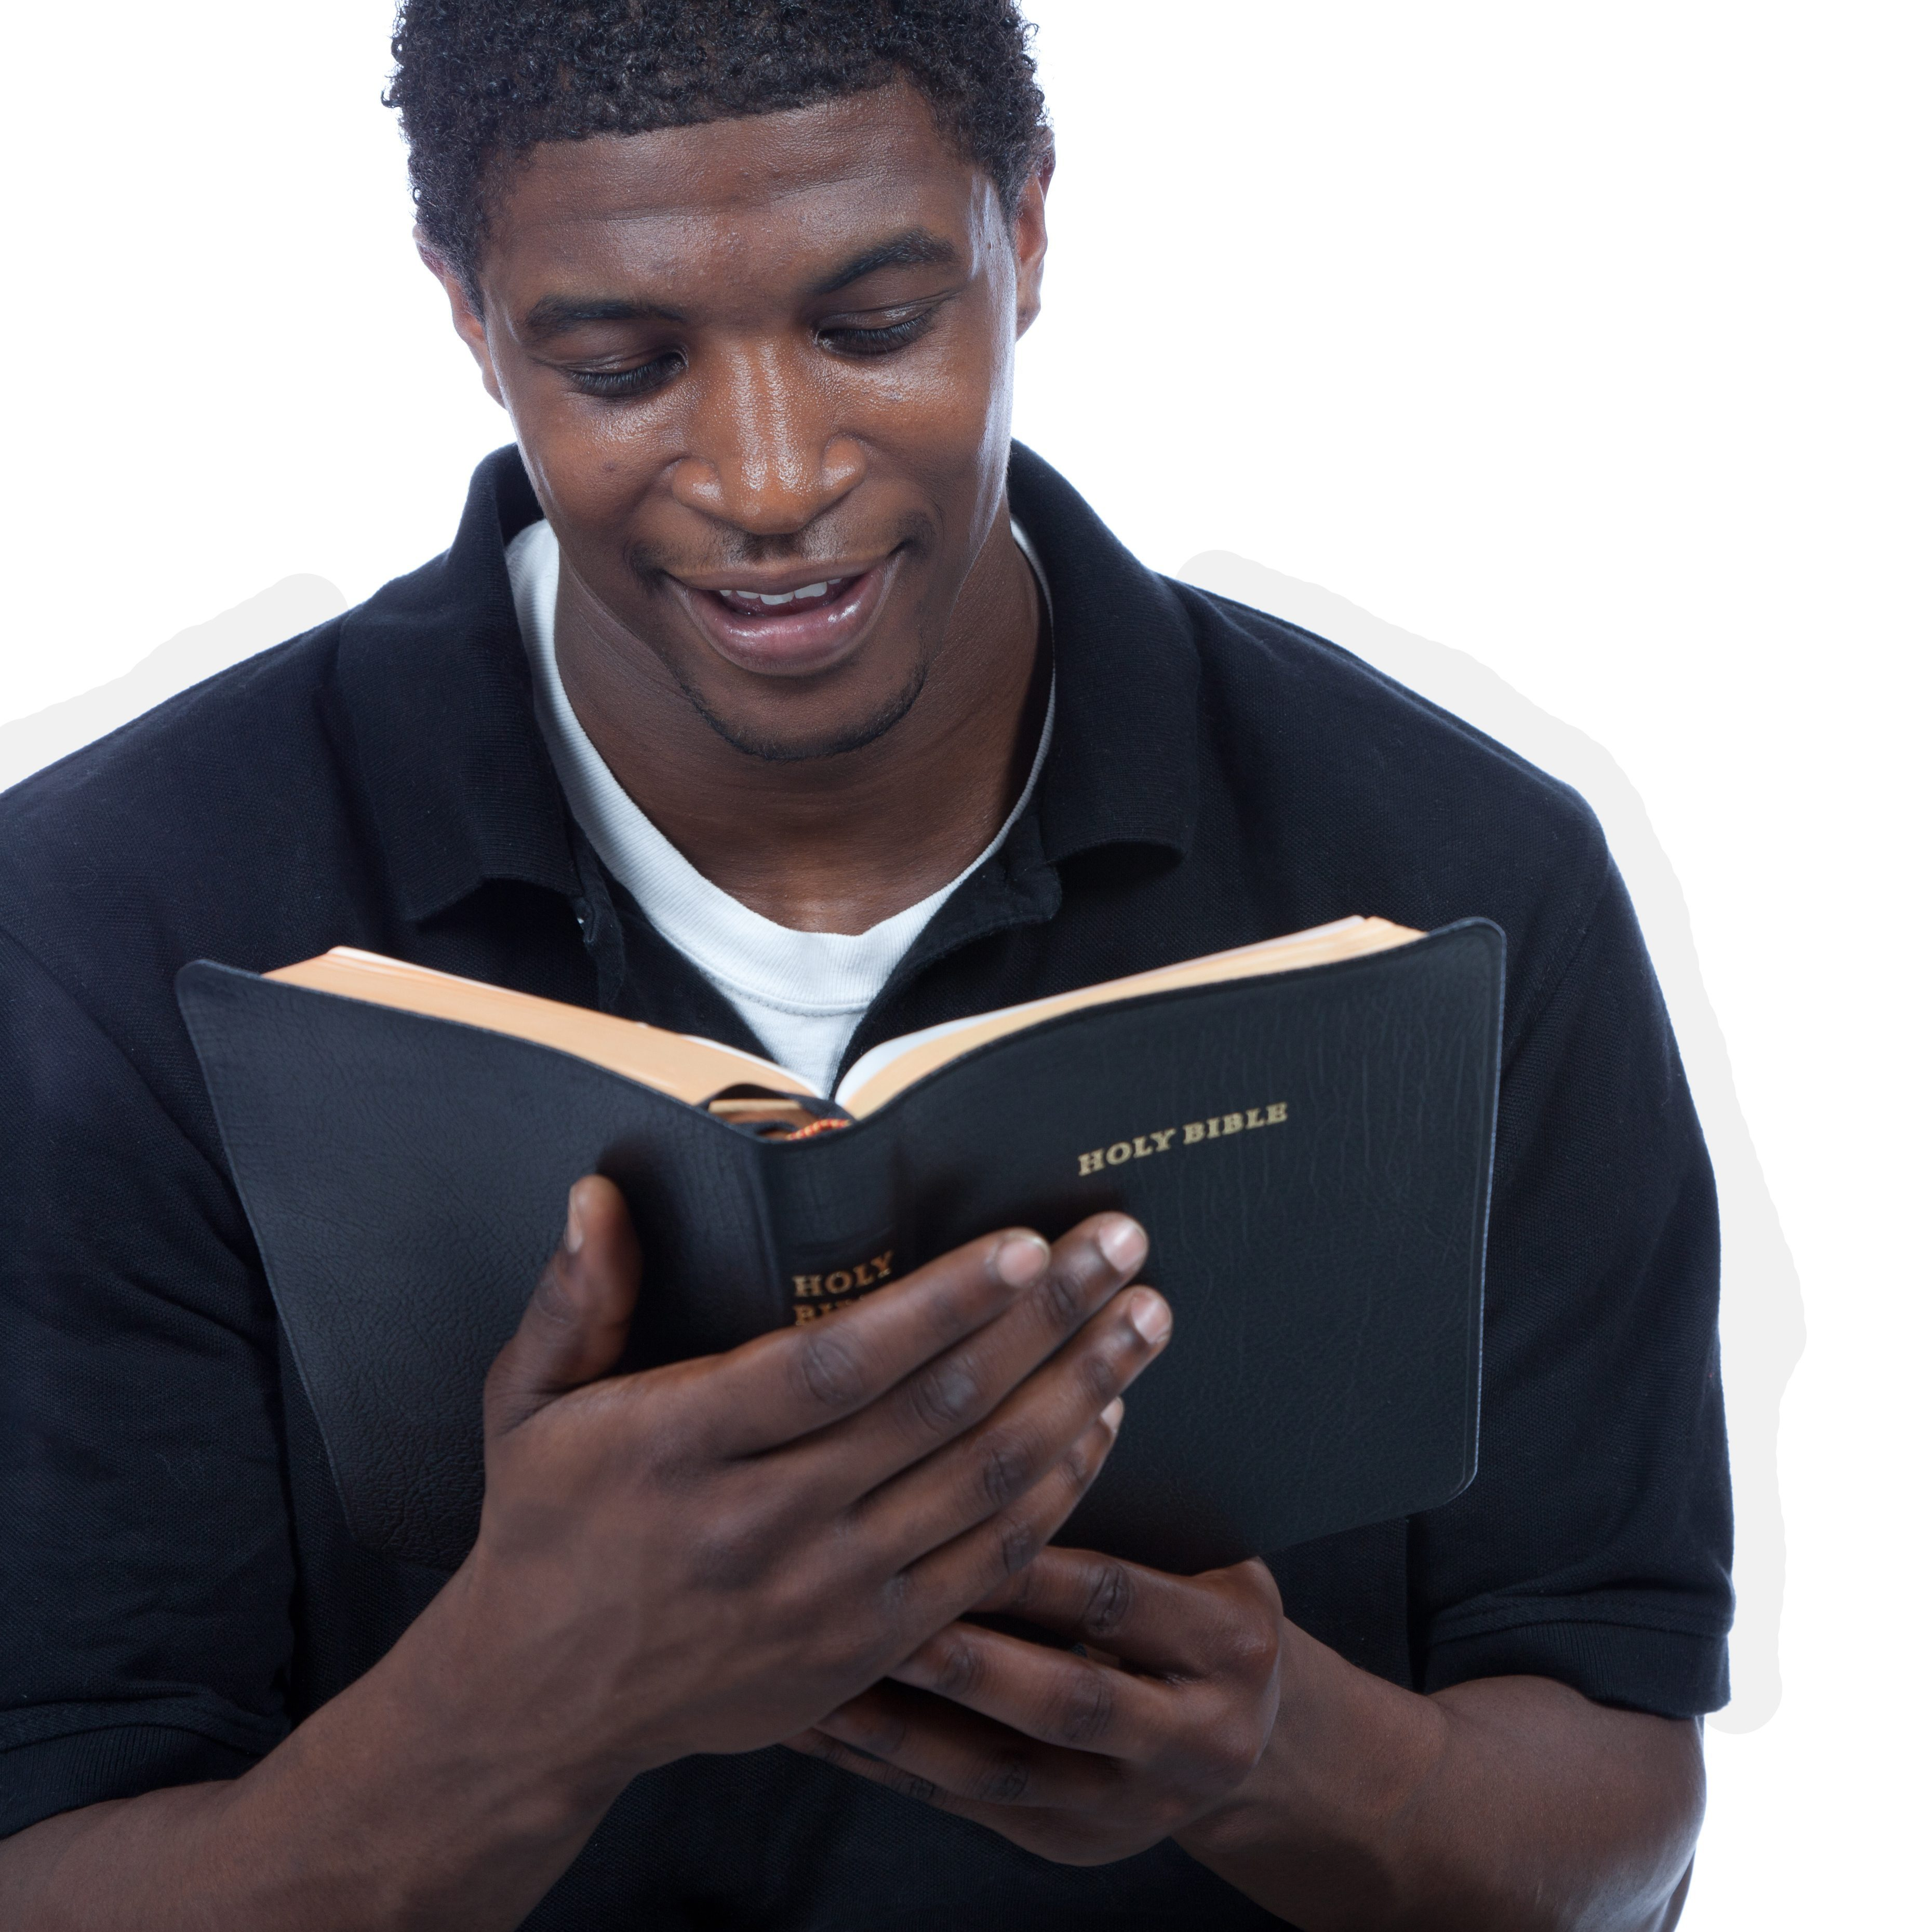 Improving reading skills in adults